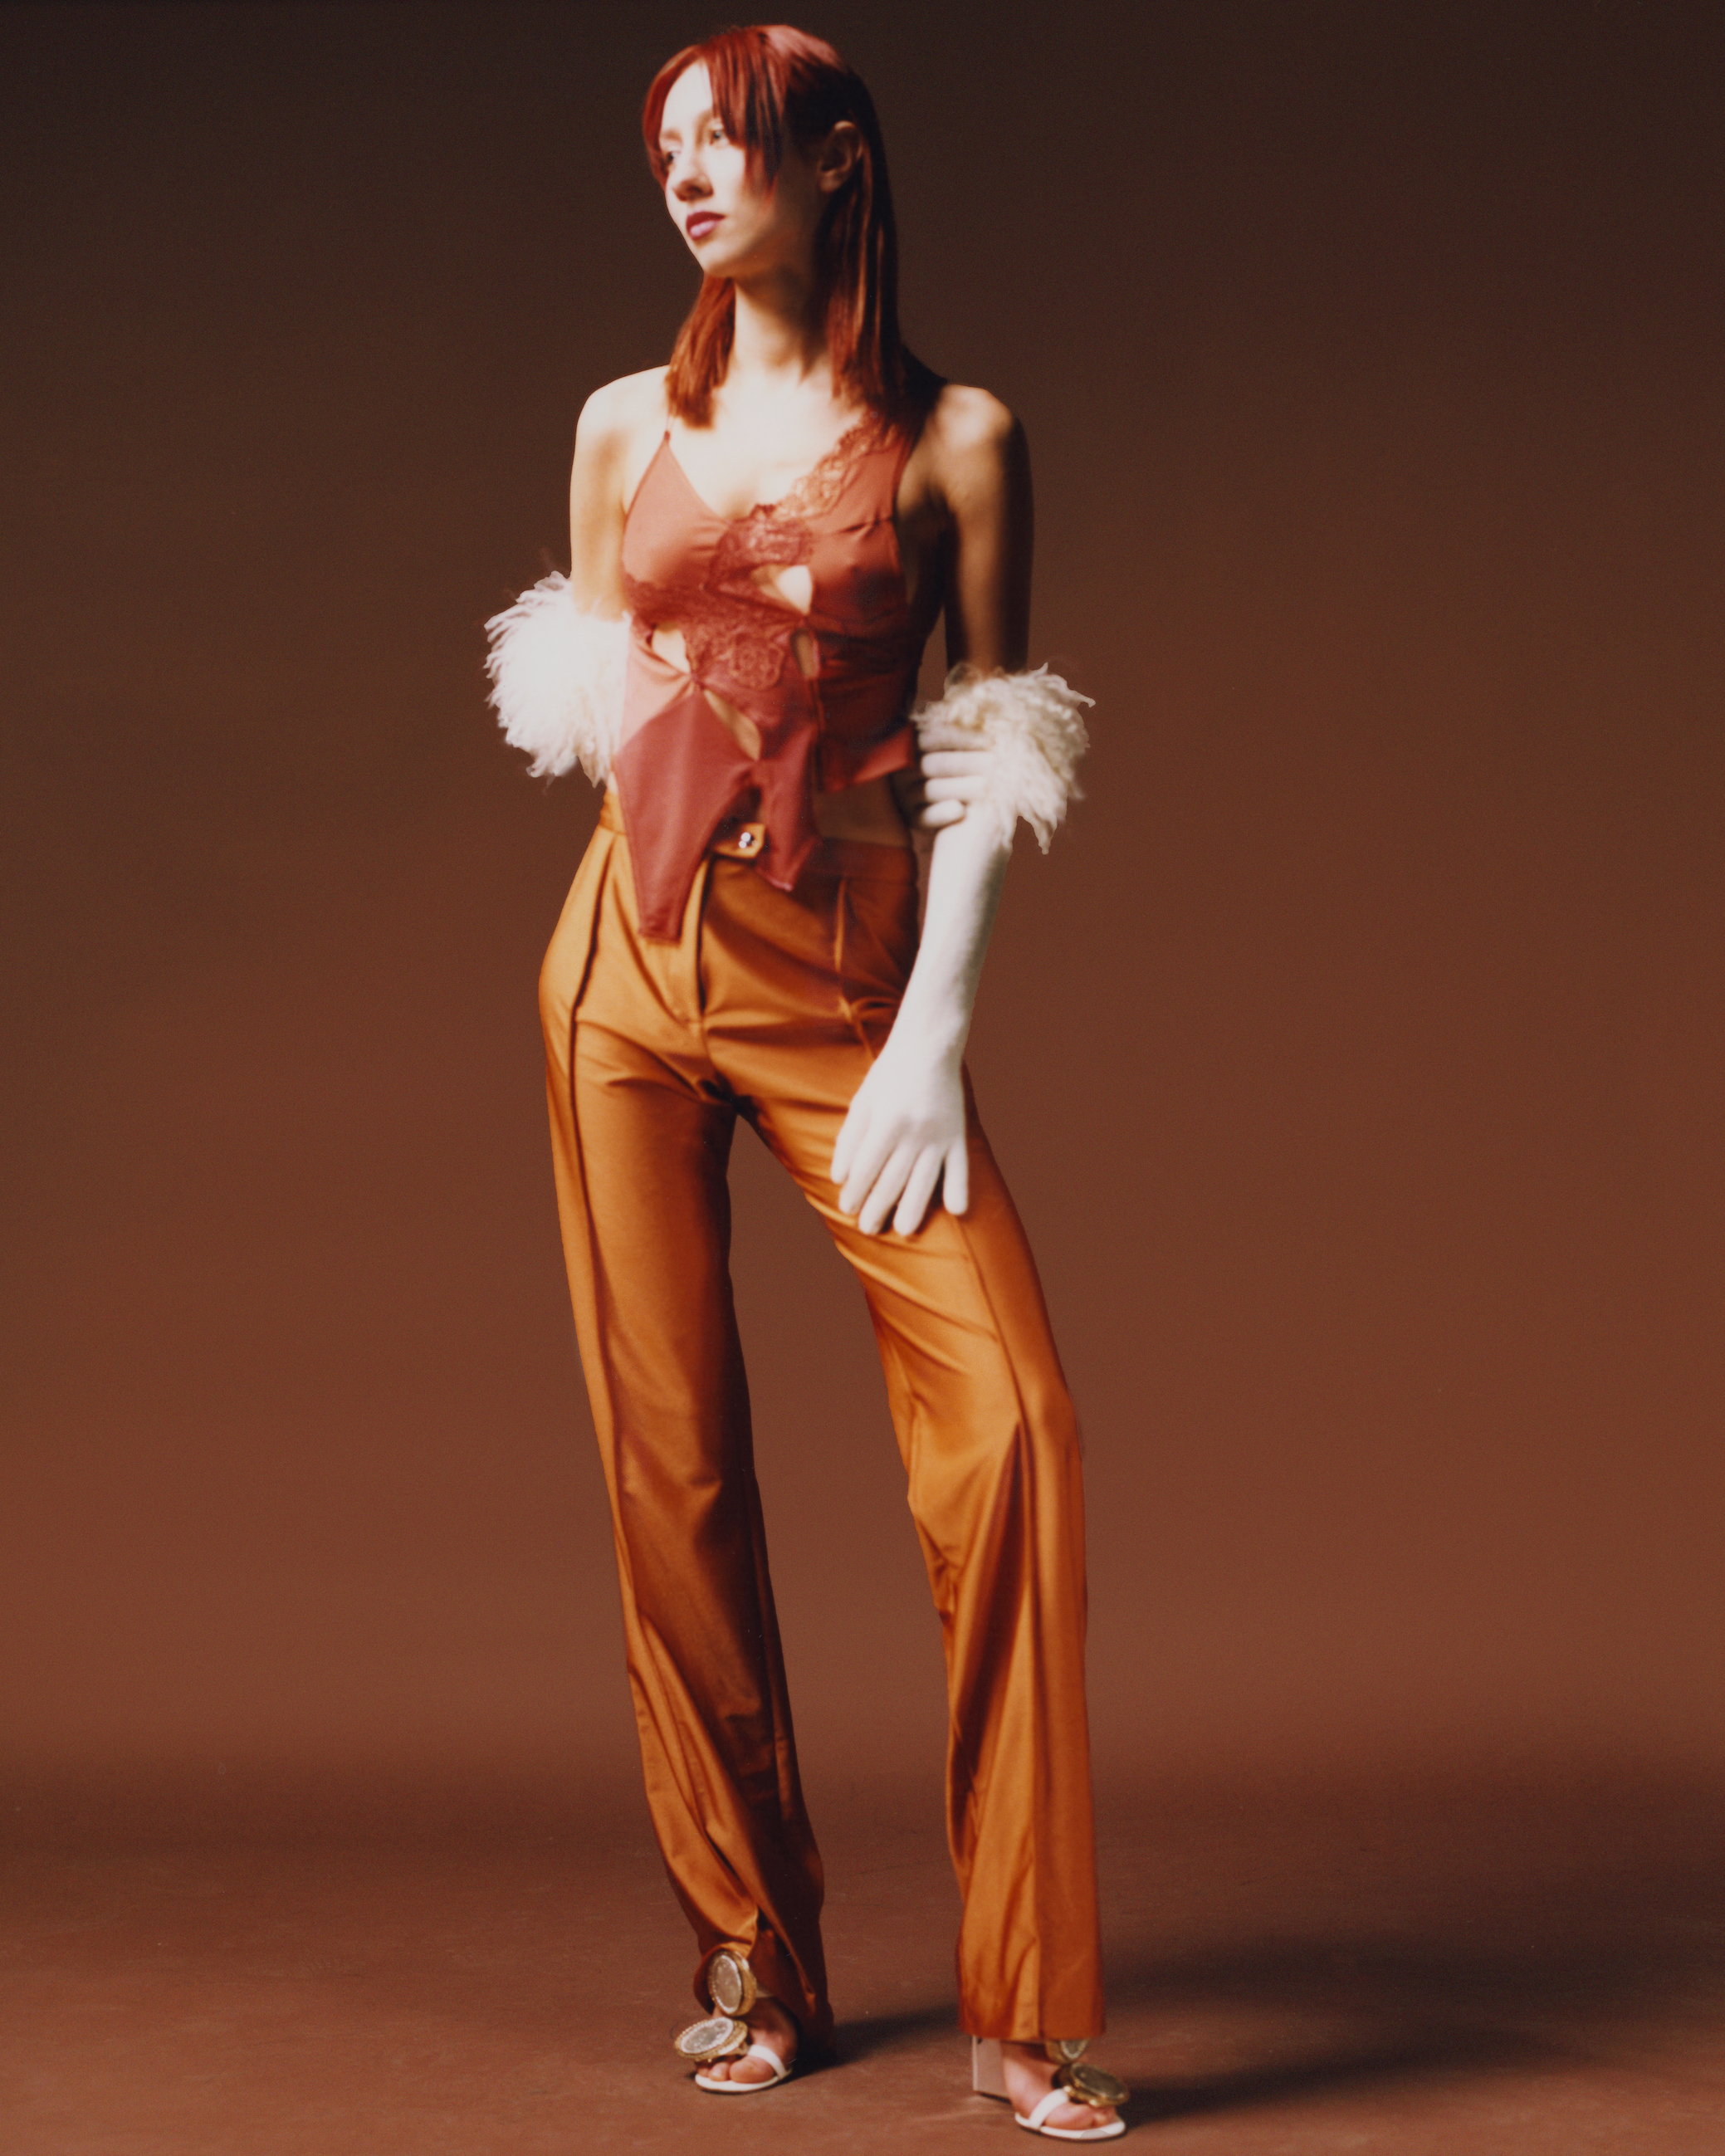 model wearing vaillant studio's aw21 collection